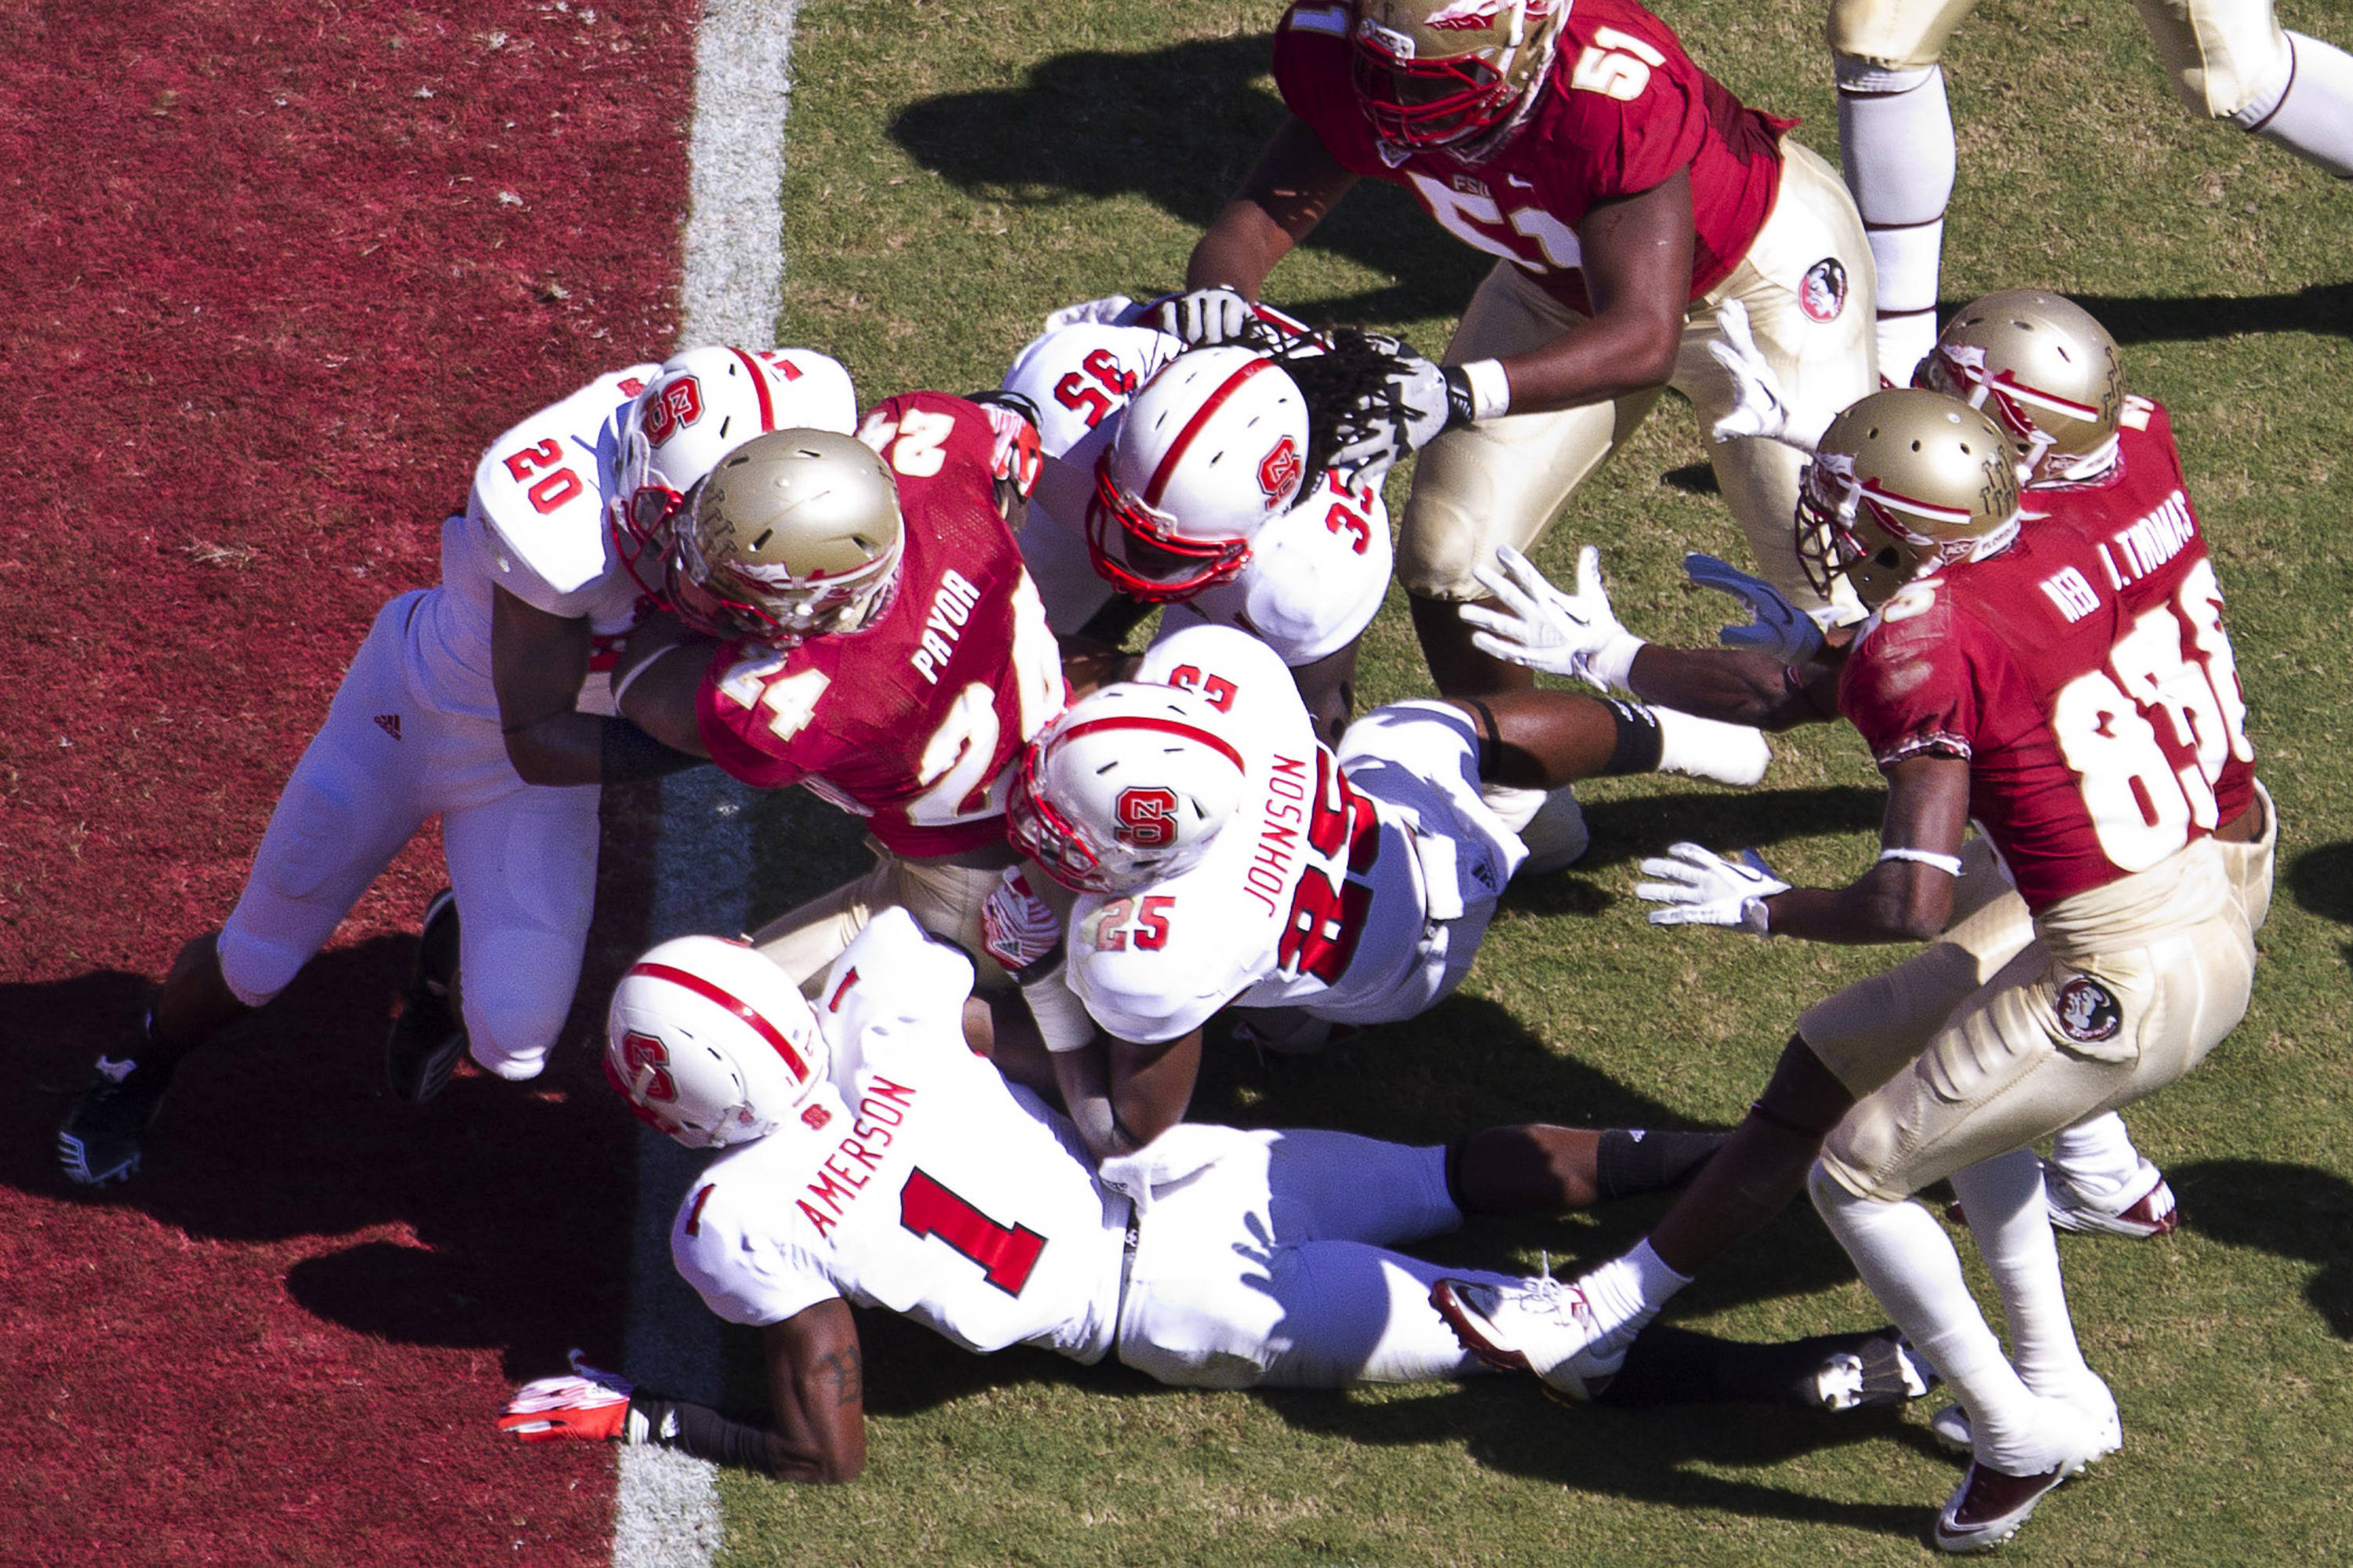 Lonnie Pryor (24) carries the ball through NC State defenders for a touchdown during the football game against NC State October 29, 2011.